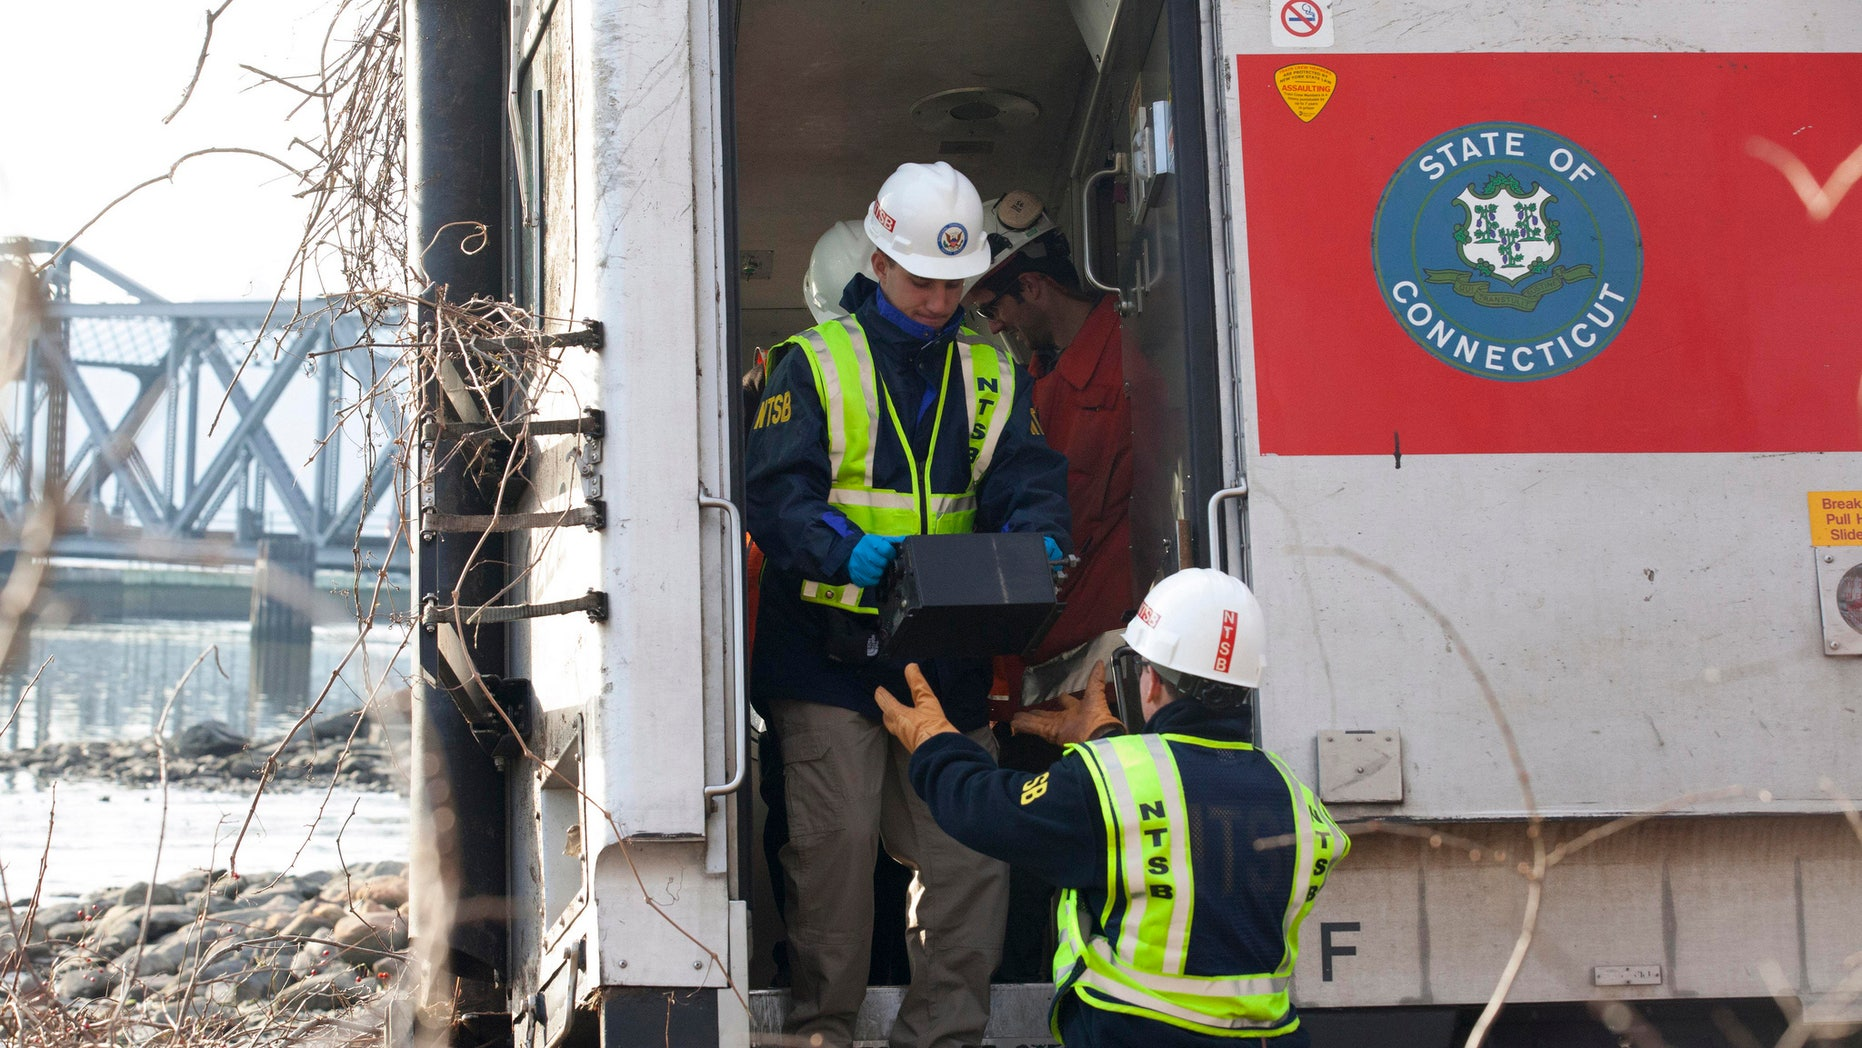 NTSB investigator George Haralampopoulous hands a data recorder down to Mike Hiller from the derailed Metro-North train in the Bronx borough of New York, on Dec 1, 2013.